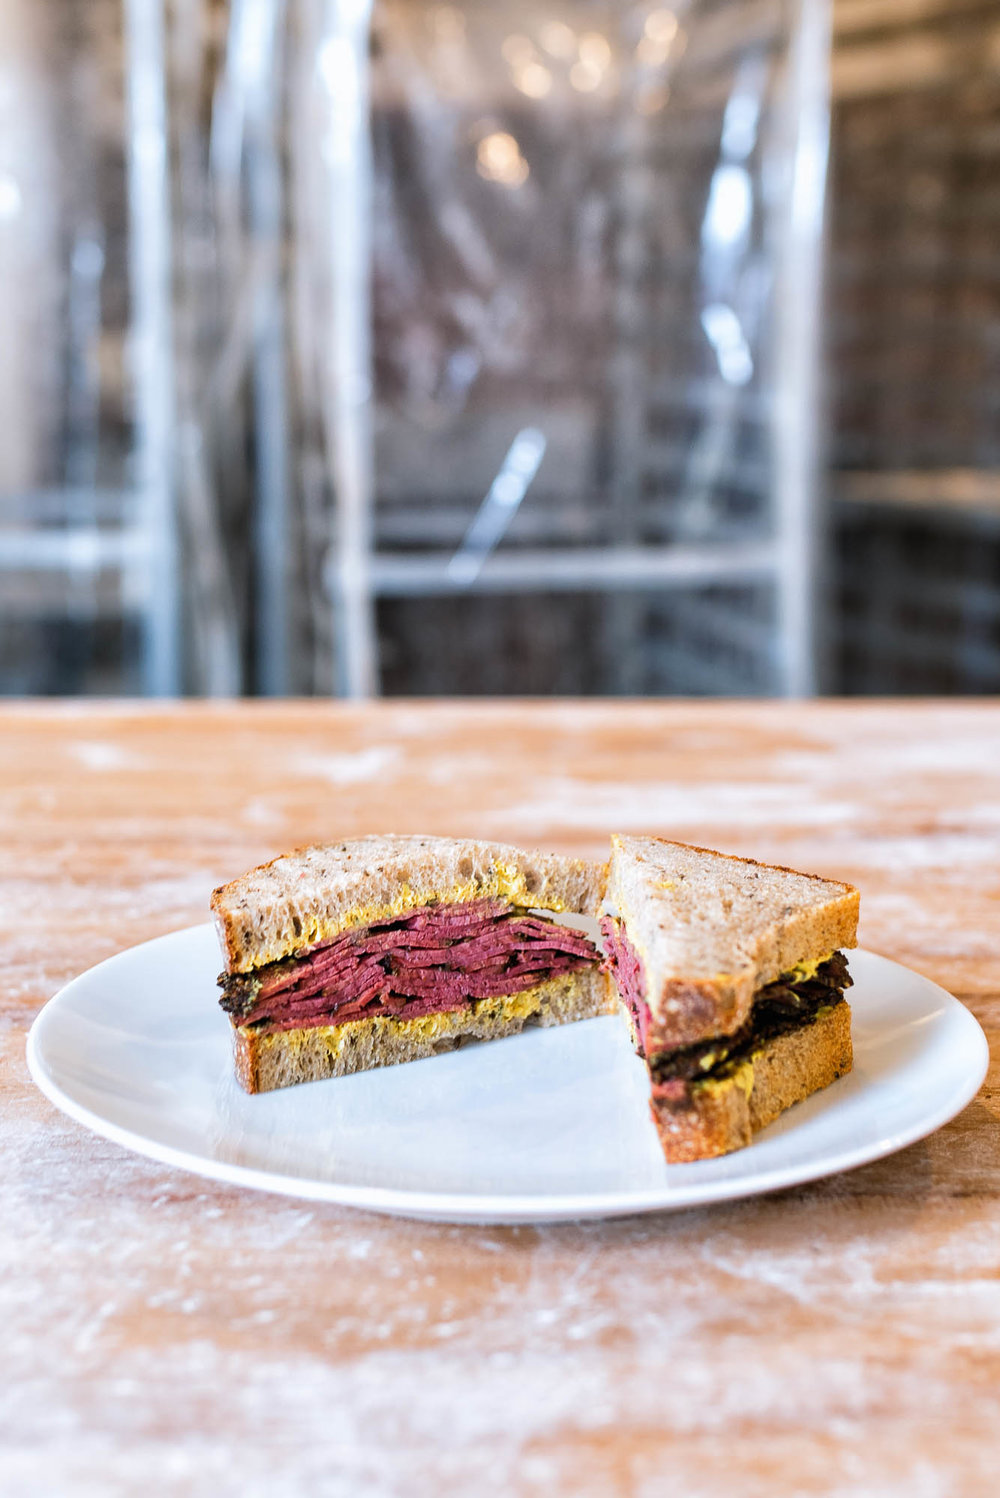 Hot-Pastrami-Sandwich-at-Union-Loafers-2.jpg